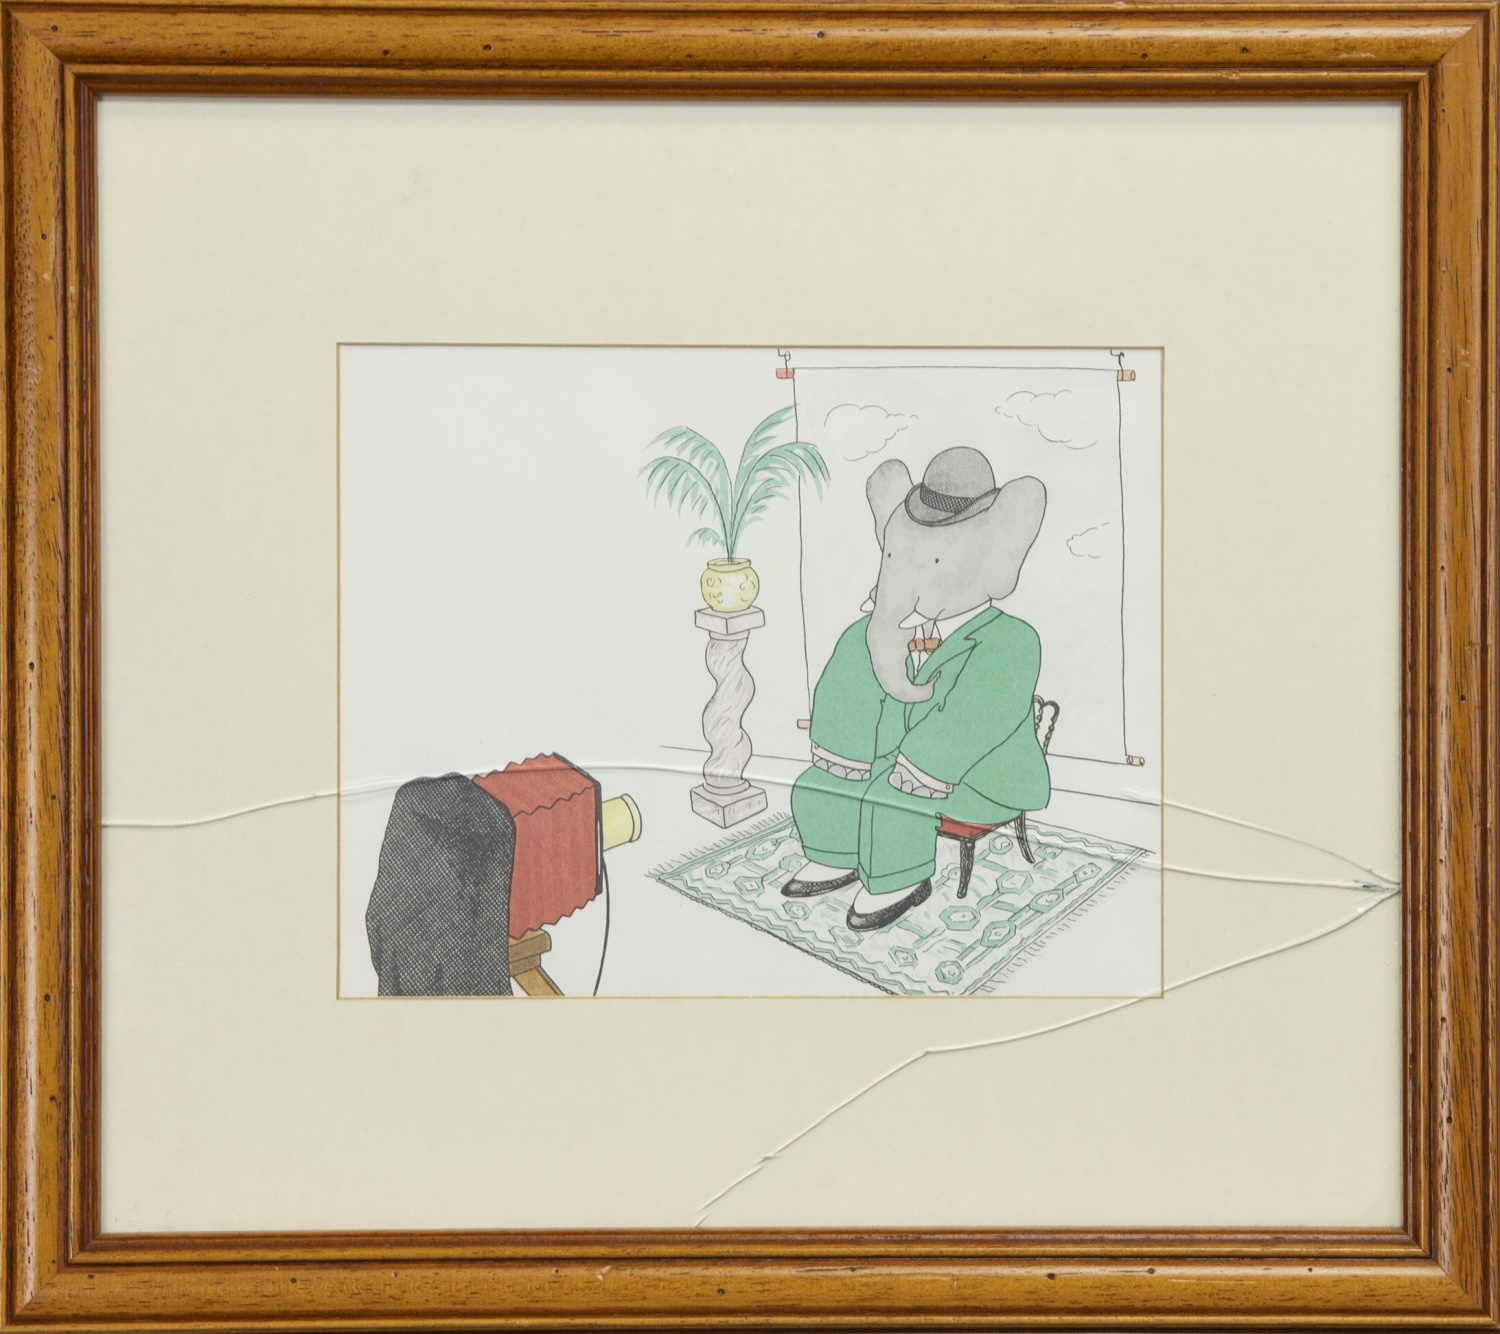 BABAR THE ELEPHANT, A PRINT AFTER JEAN DE BRUNHOFF AND A CONTEMPORARY PASTEL - Image 3 of 3